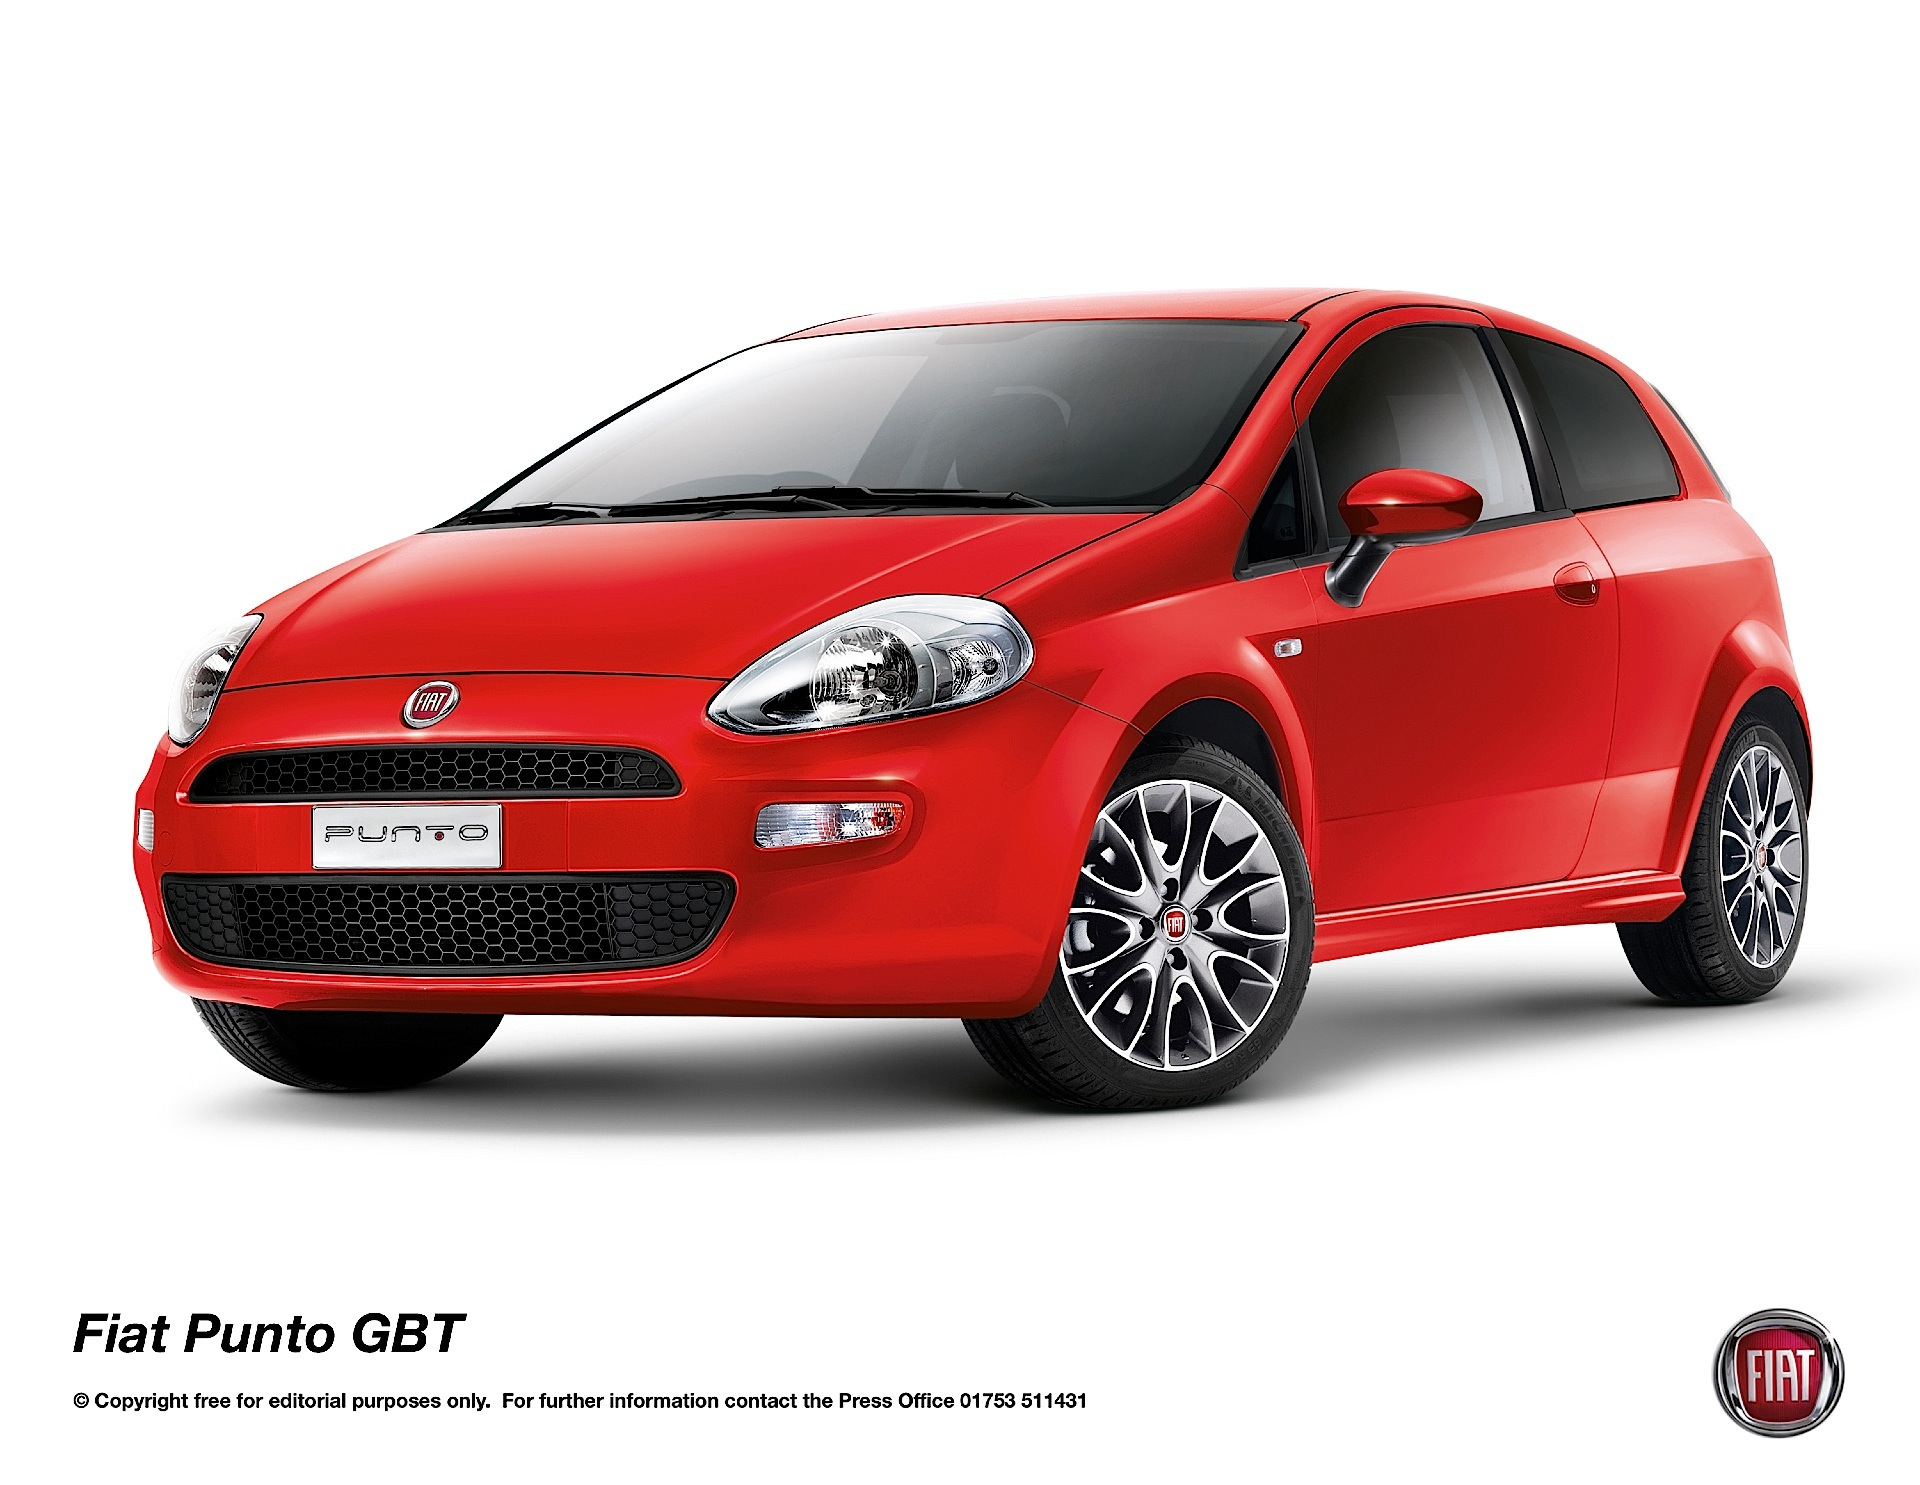 fiat punto 176 1 9 jtd eurospeed performance chip tuning. Black Bedroom Furniture Sets. Home Design Ideas